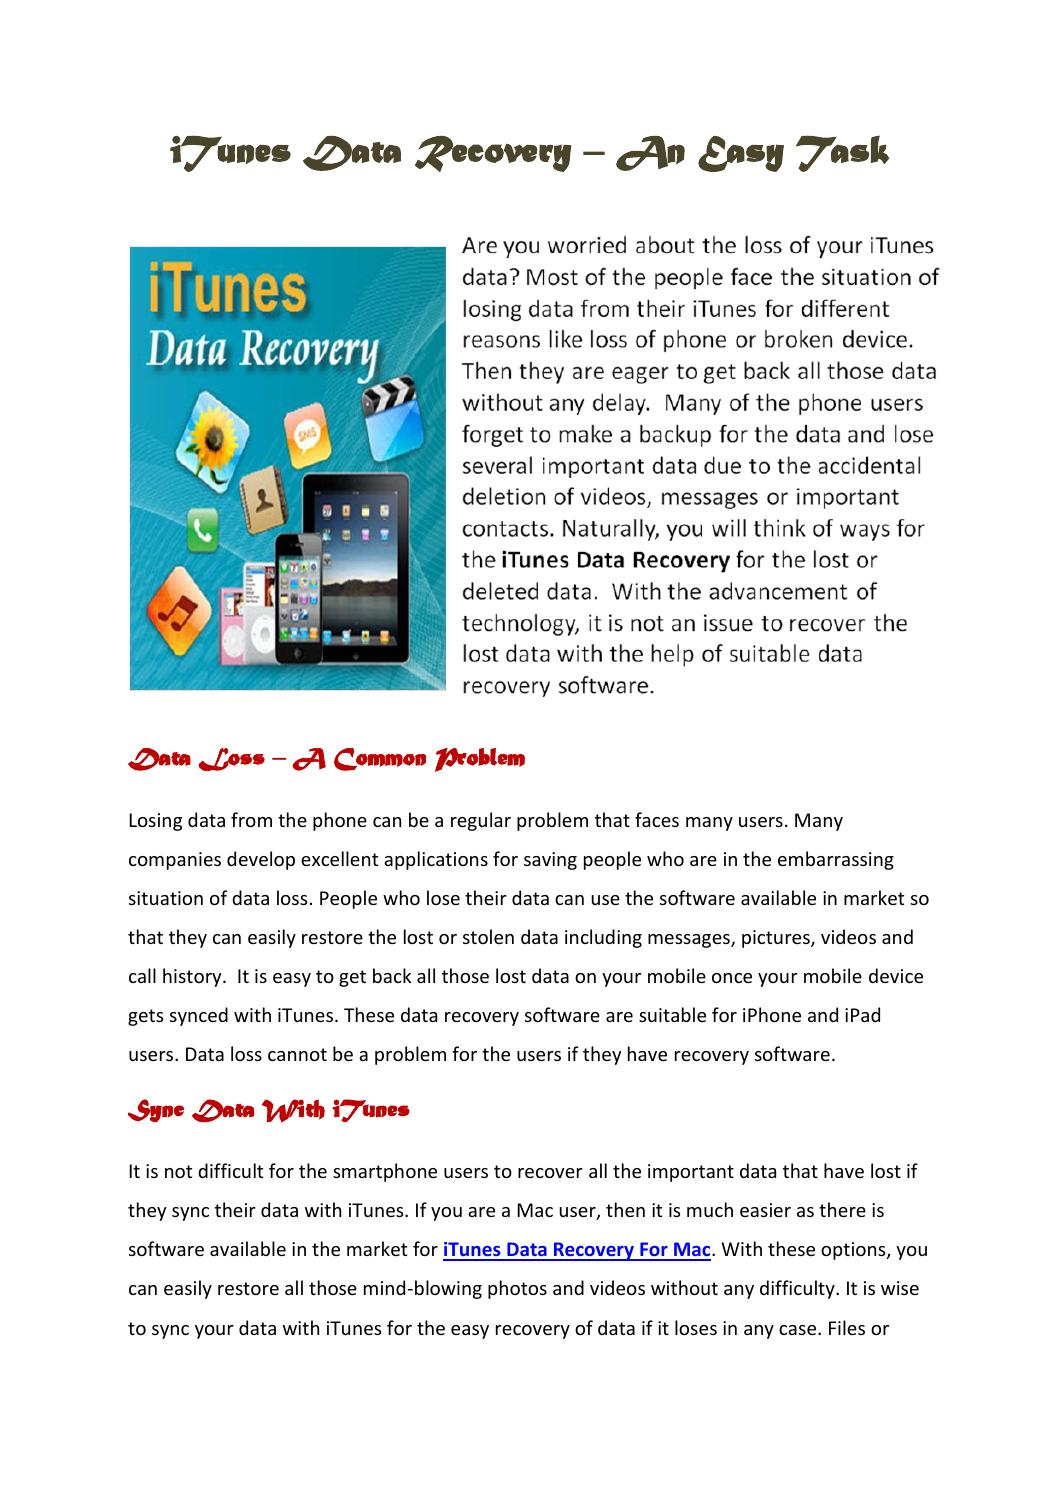 Itunes data recovery an easy task by Steve Martyn